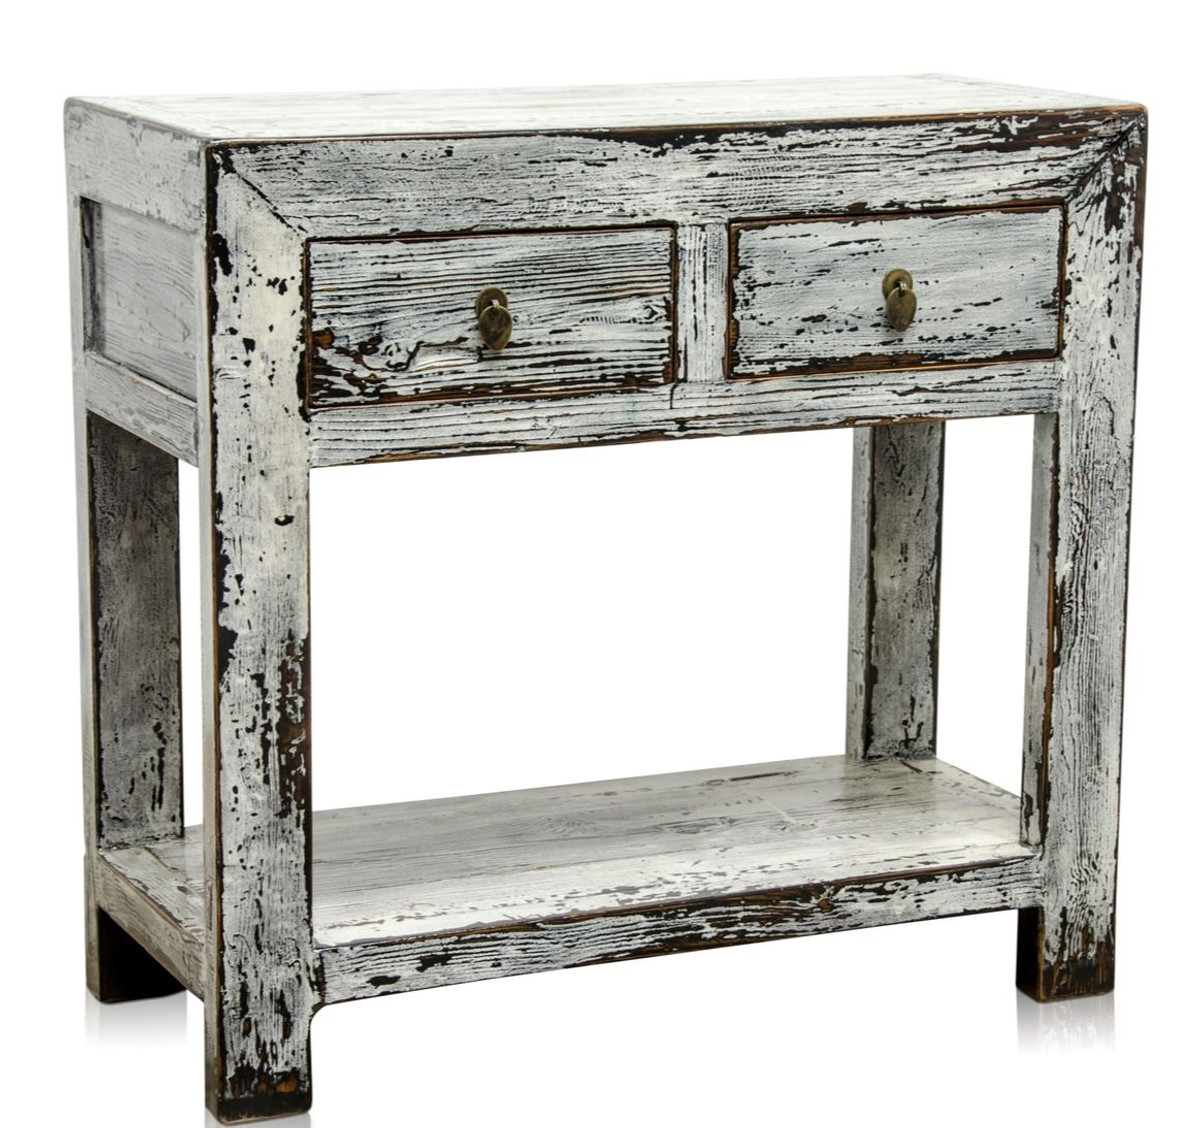 Casa padrino country style console antique style white 90 x 40 x h 85 cm country style - Casa country style ...